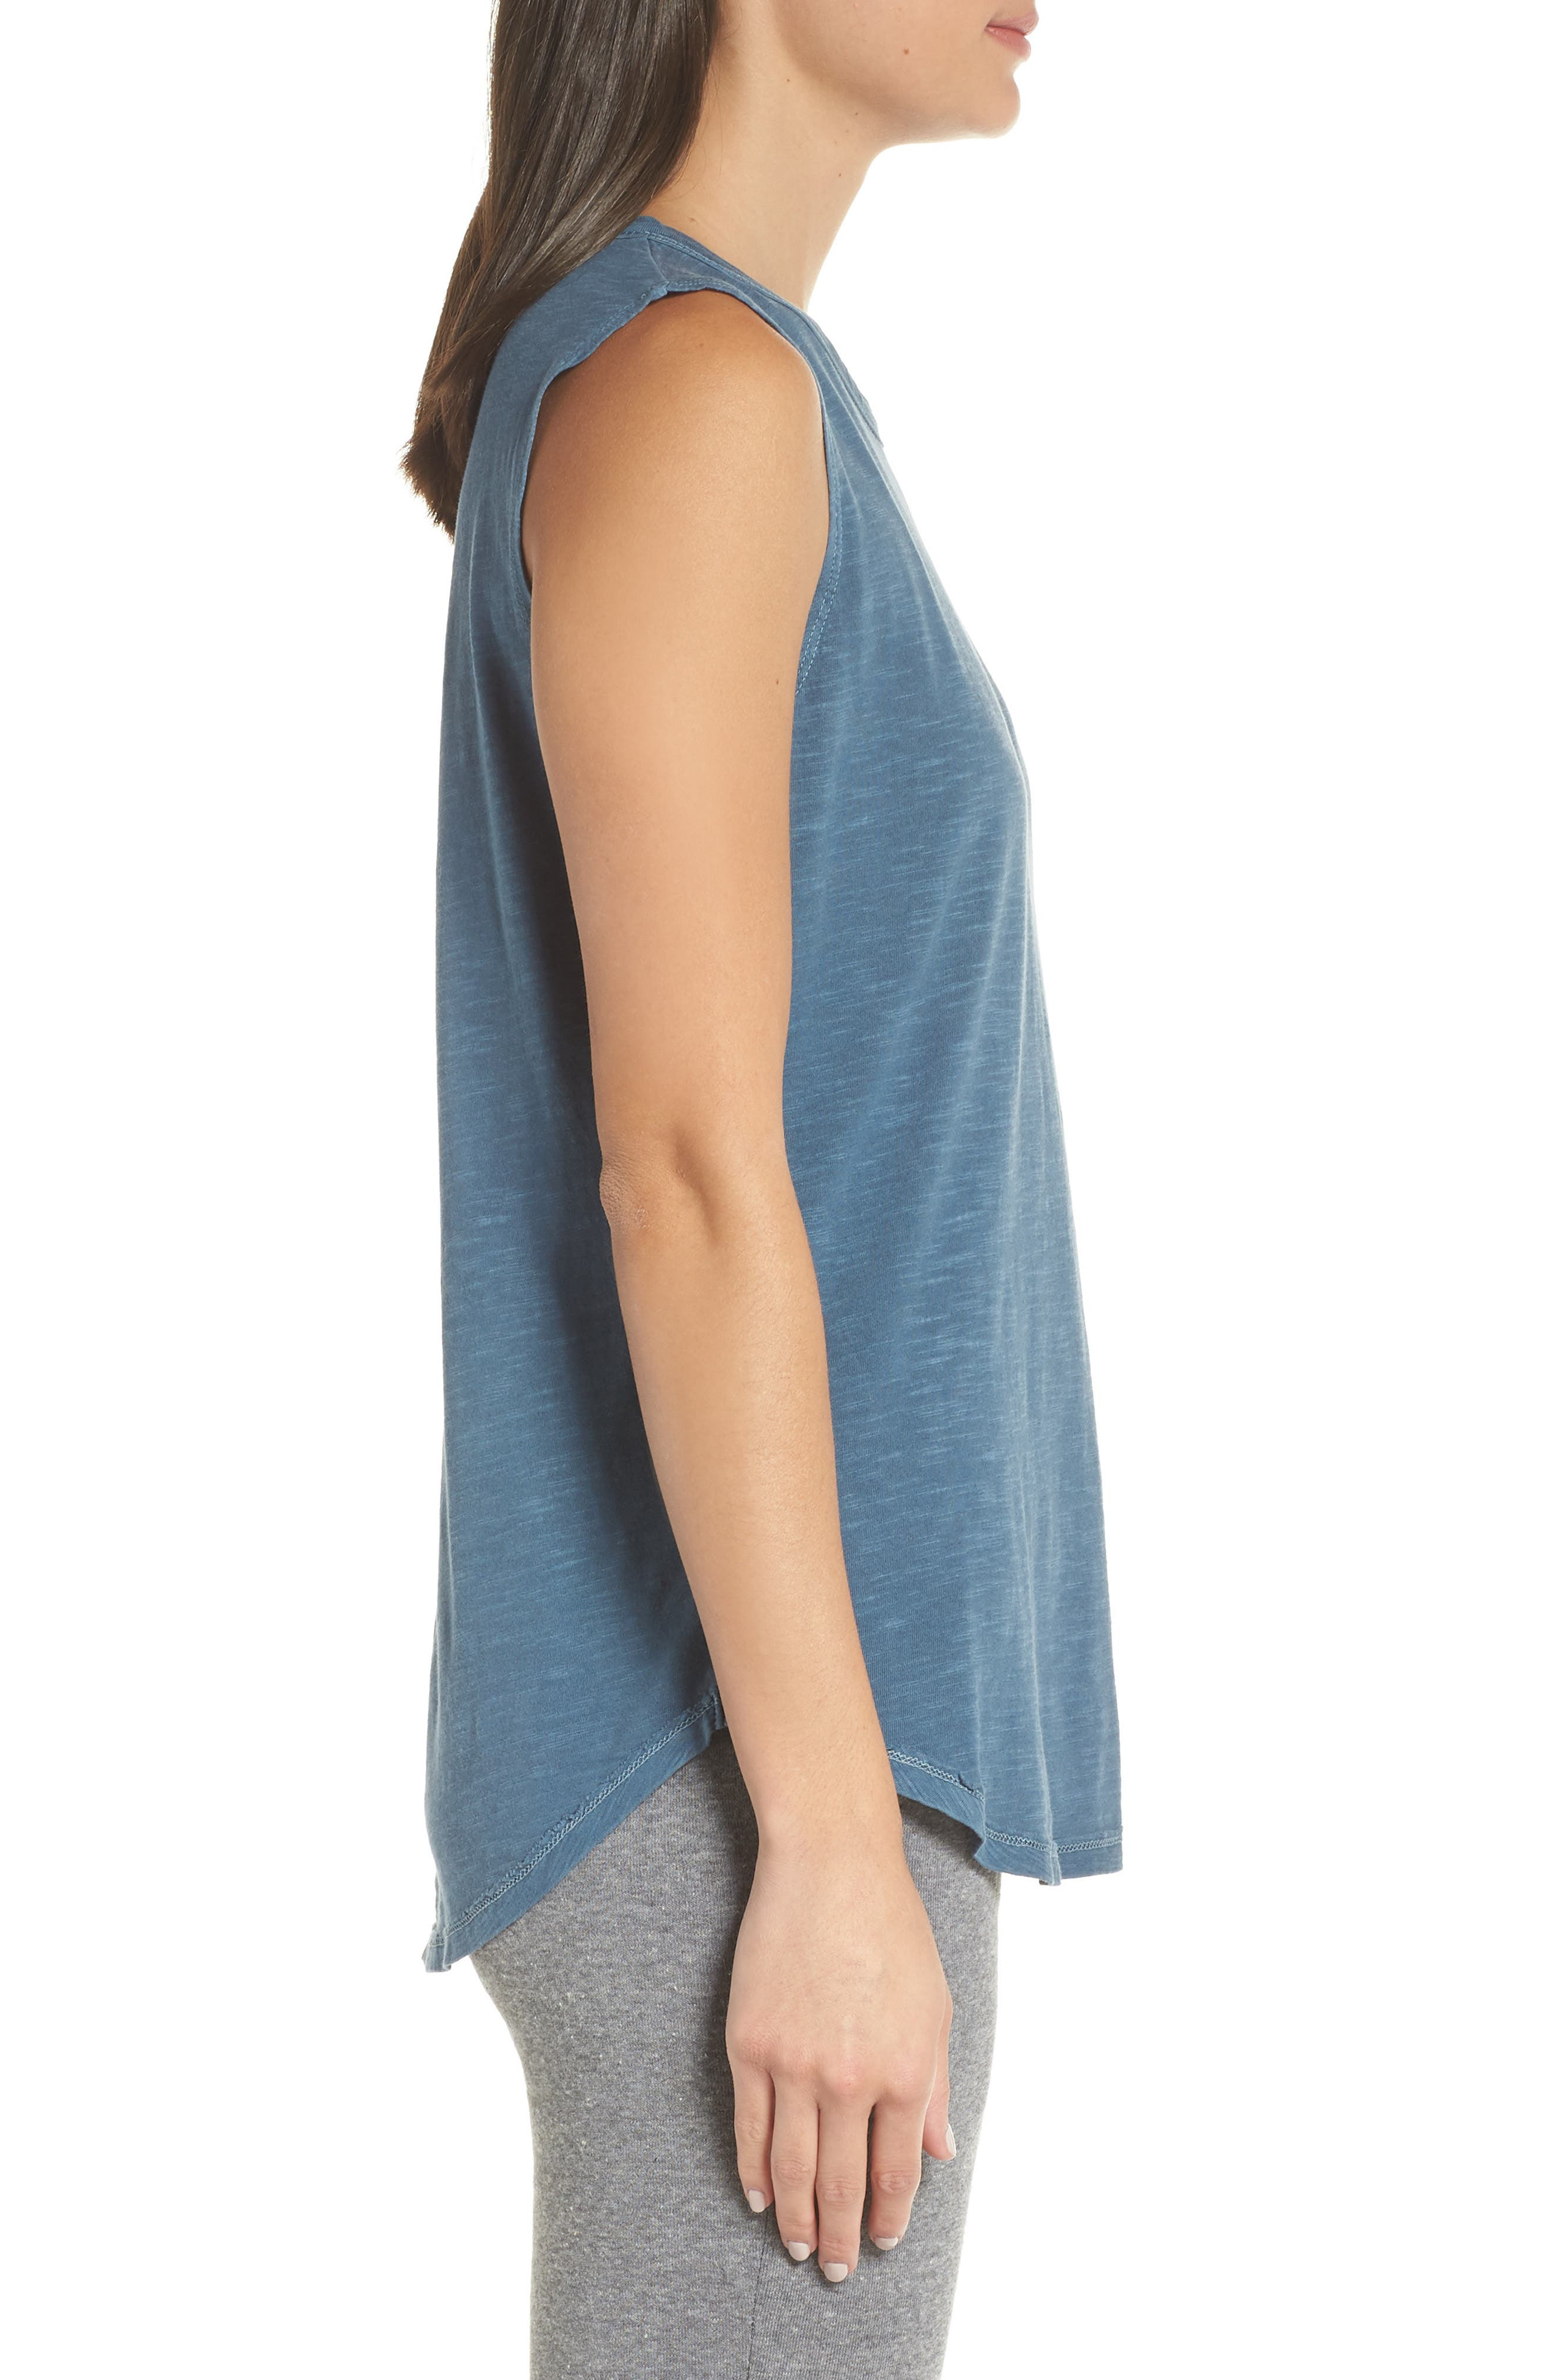 Inside Out Muscle Tee,                             Alternate thumbnail 3, color,                             MINERAL BLUE PIGMENT